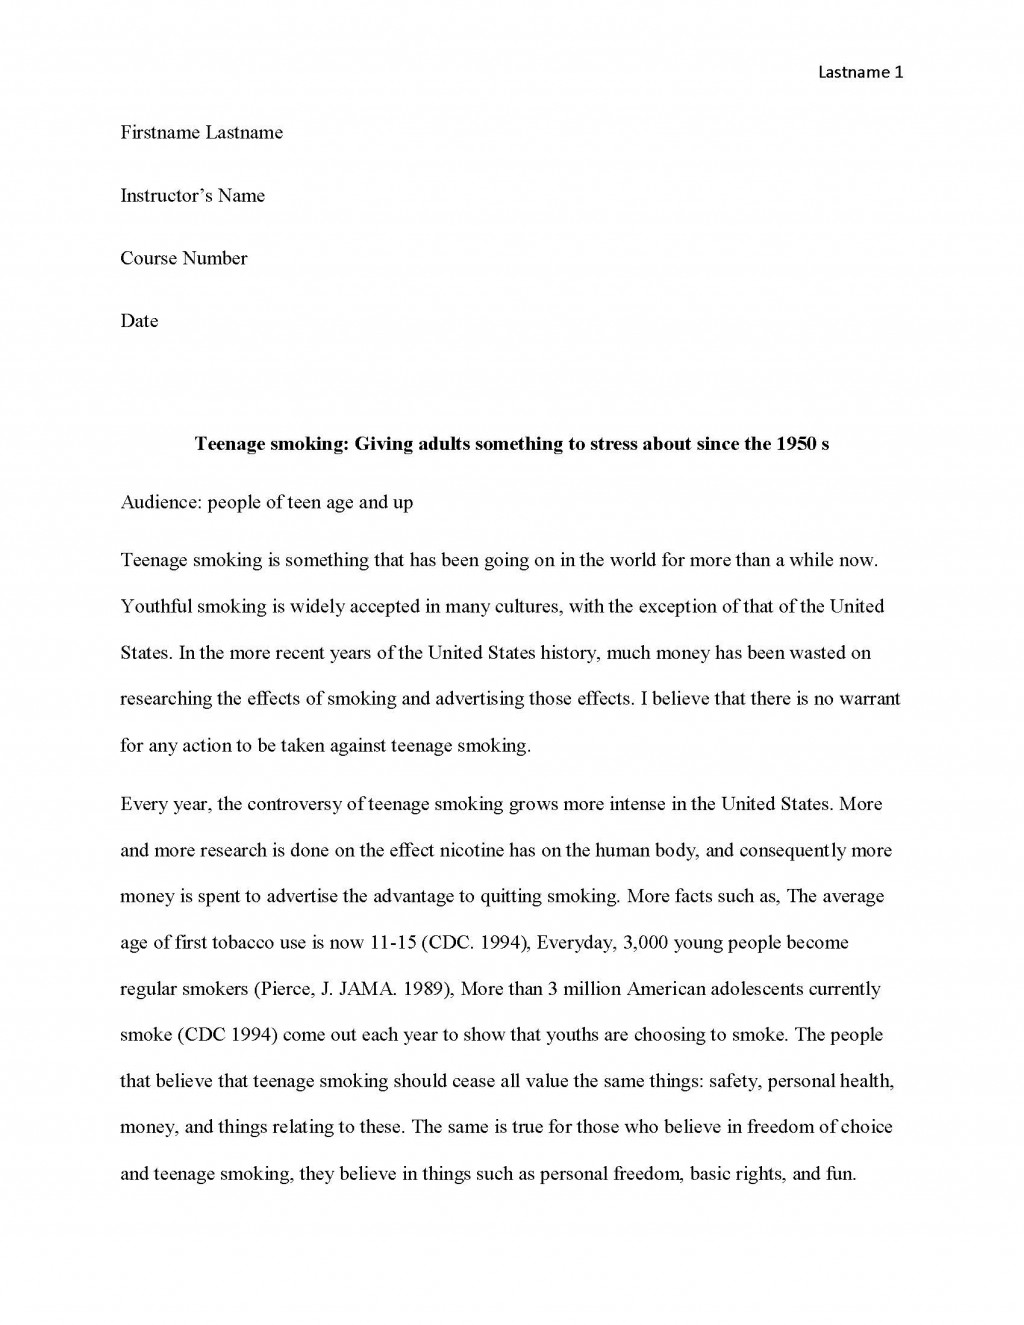 014 Teen Smoking Free Page 1 Essay Example Scholarship Stunning Sample Leadership For Mba Large